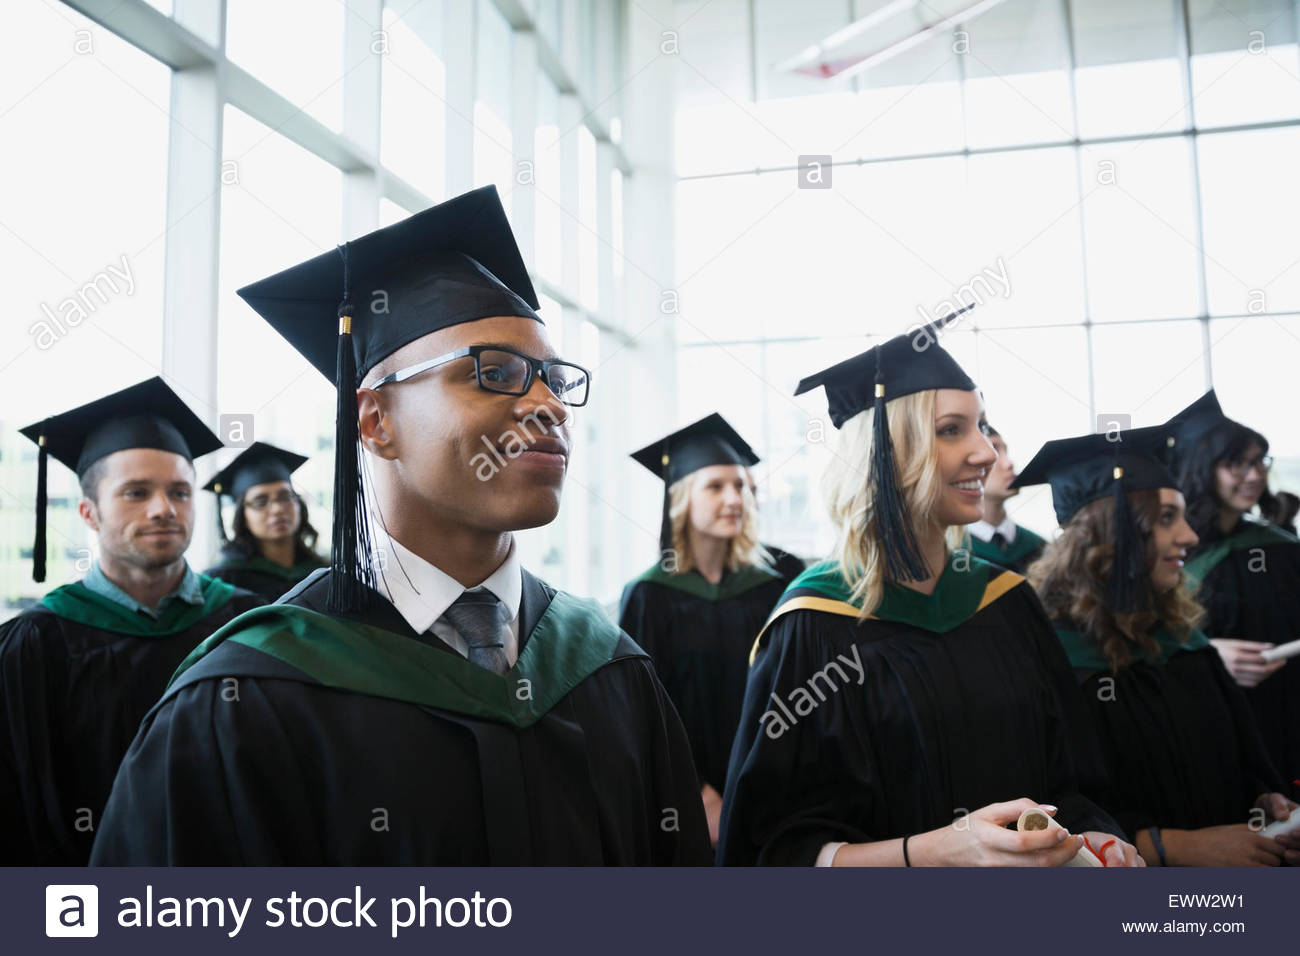 Proud college graduates cap and gown looking away - Stock Image